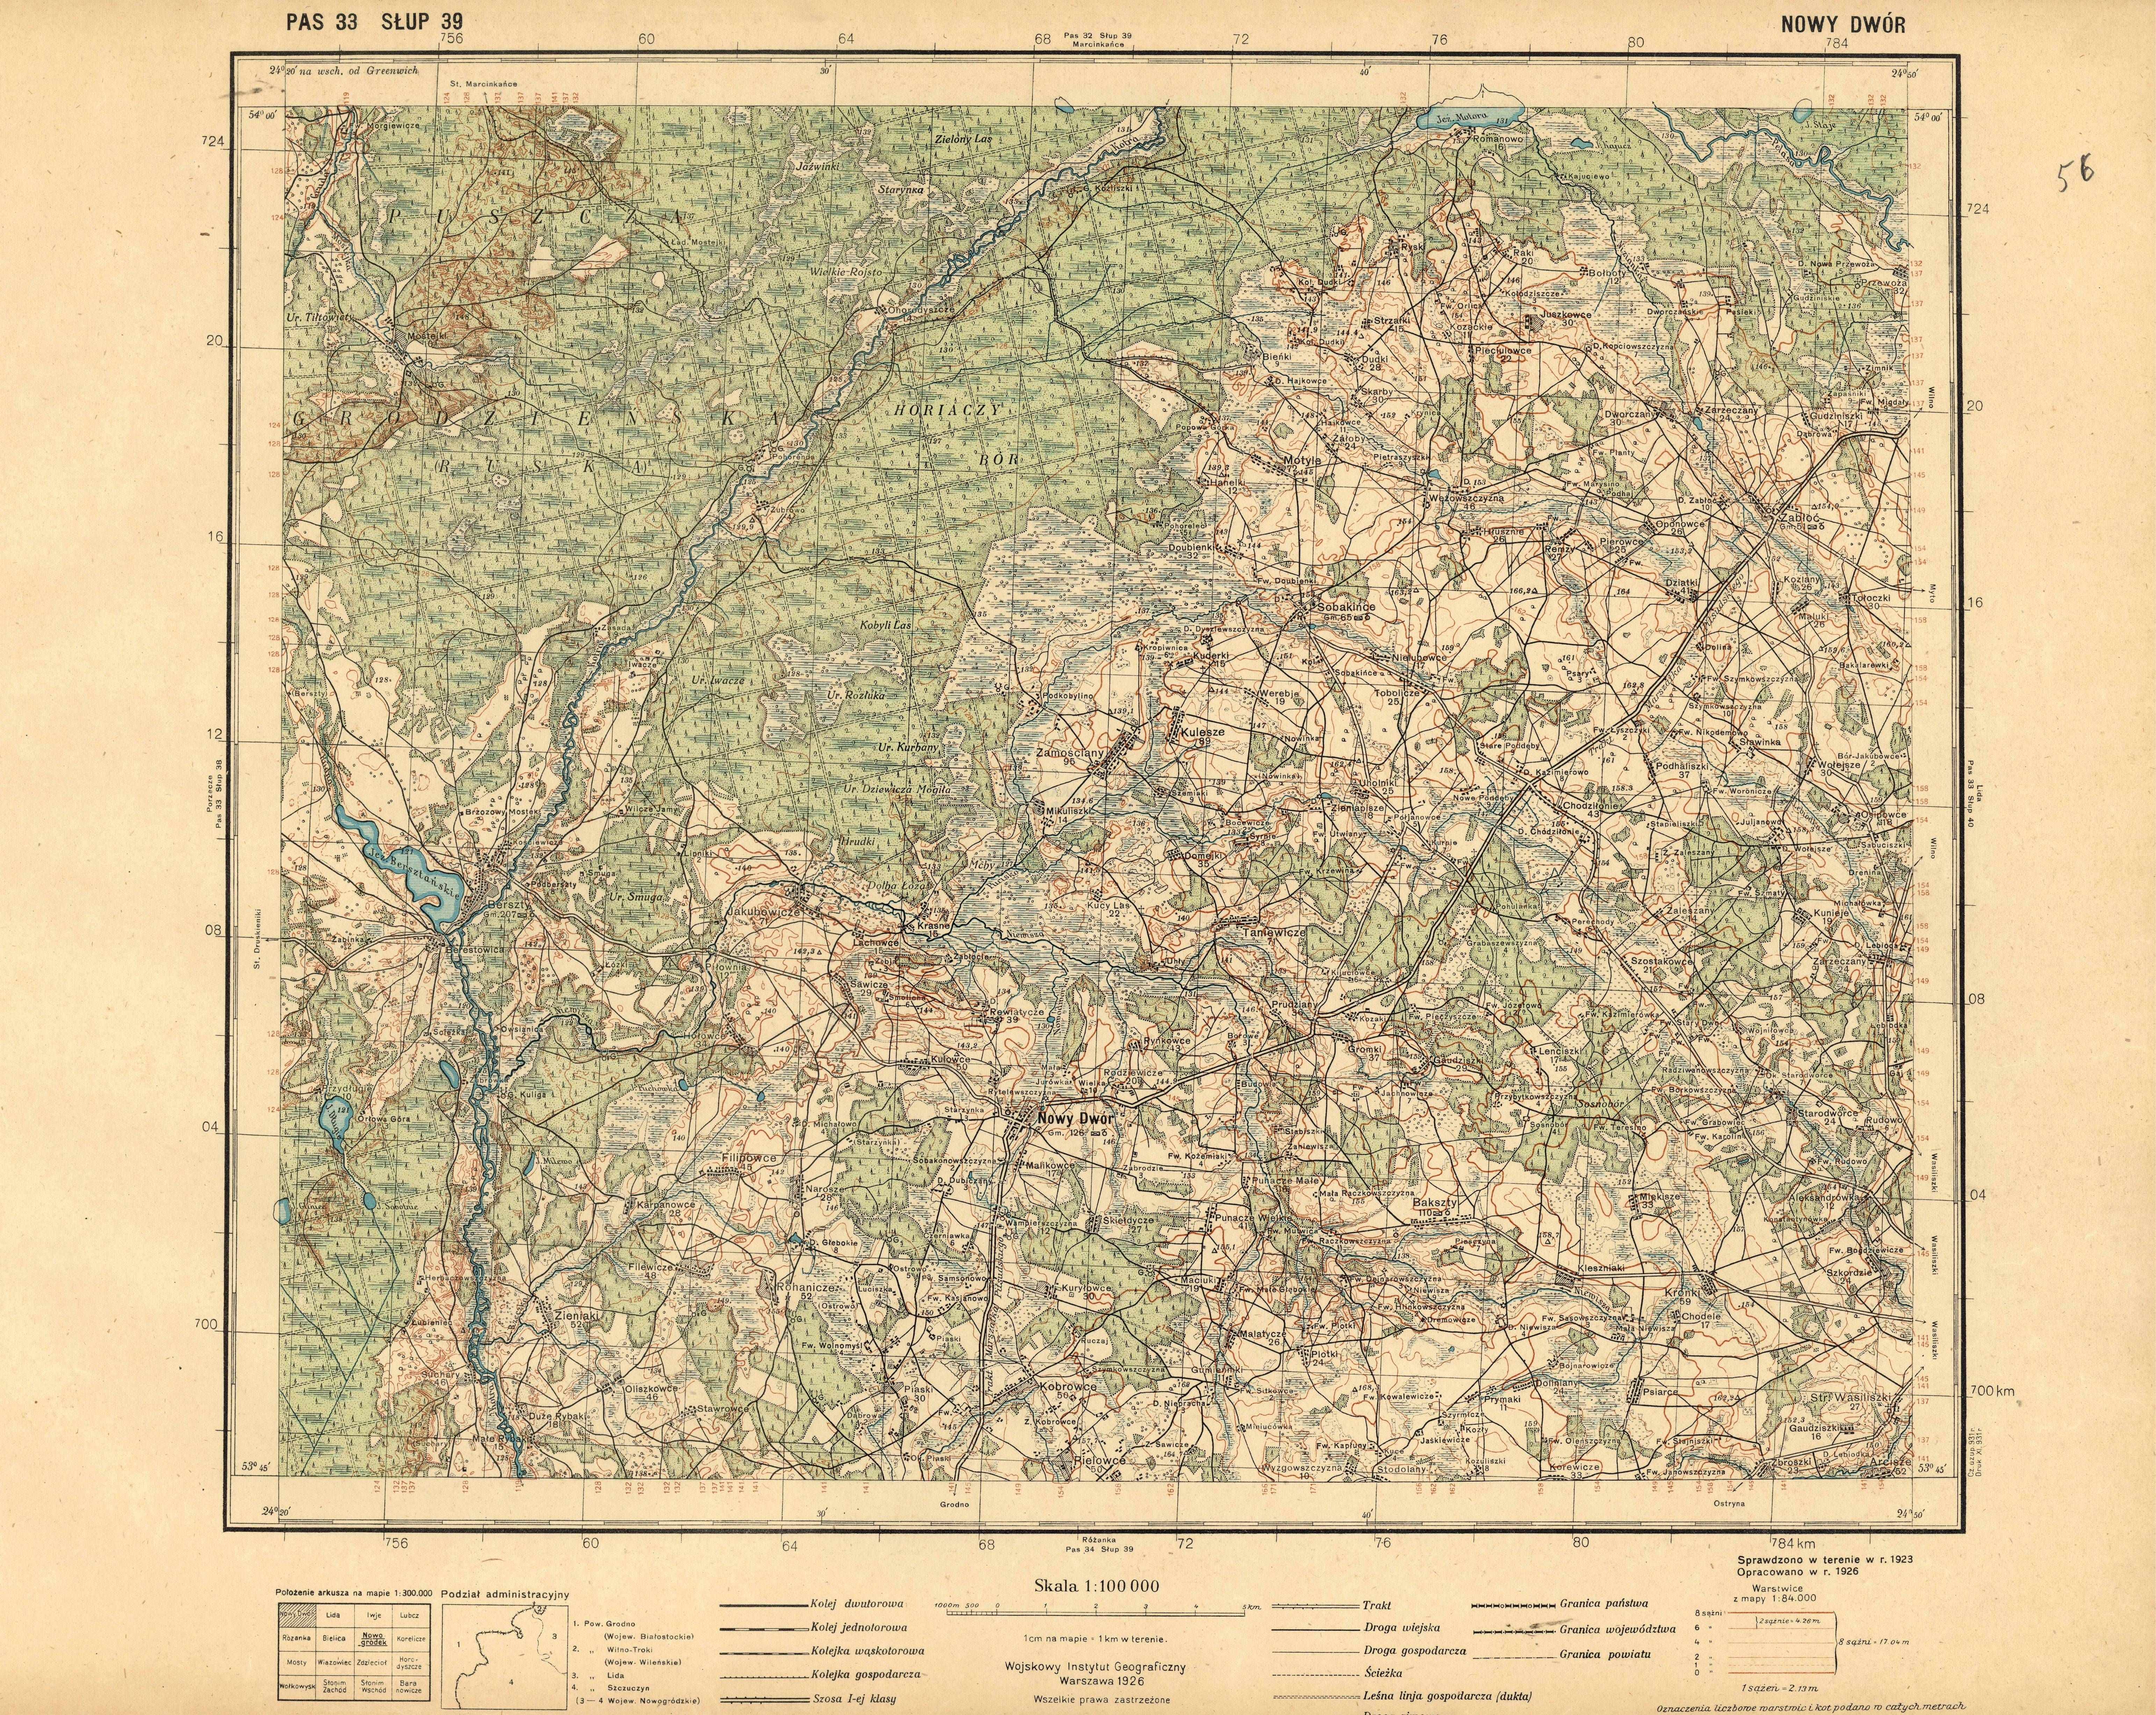 Southern Poland Map.Old Map Of Kotra National Park Surroundings In Poland Nowy Dwor